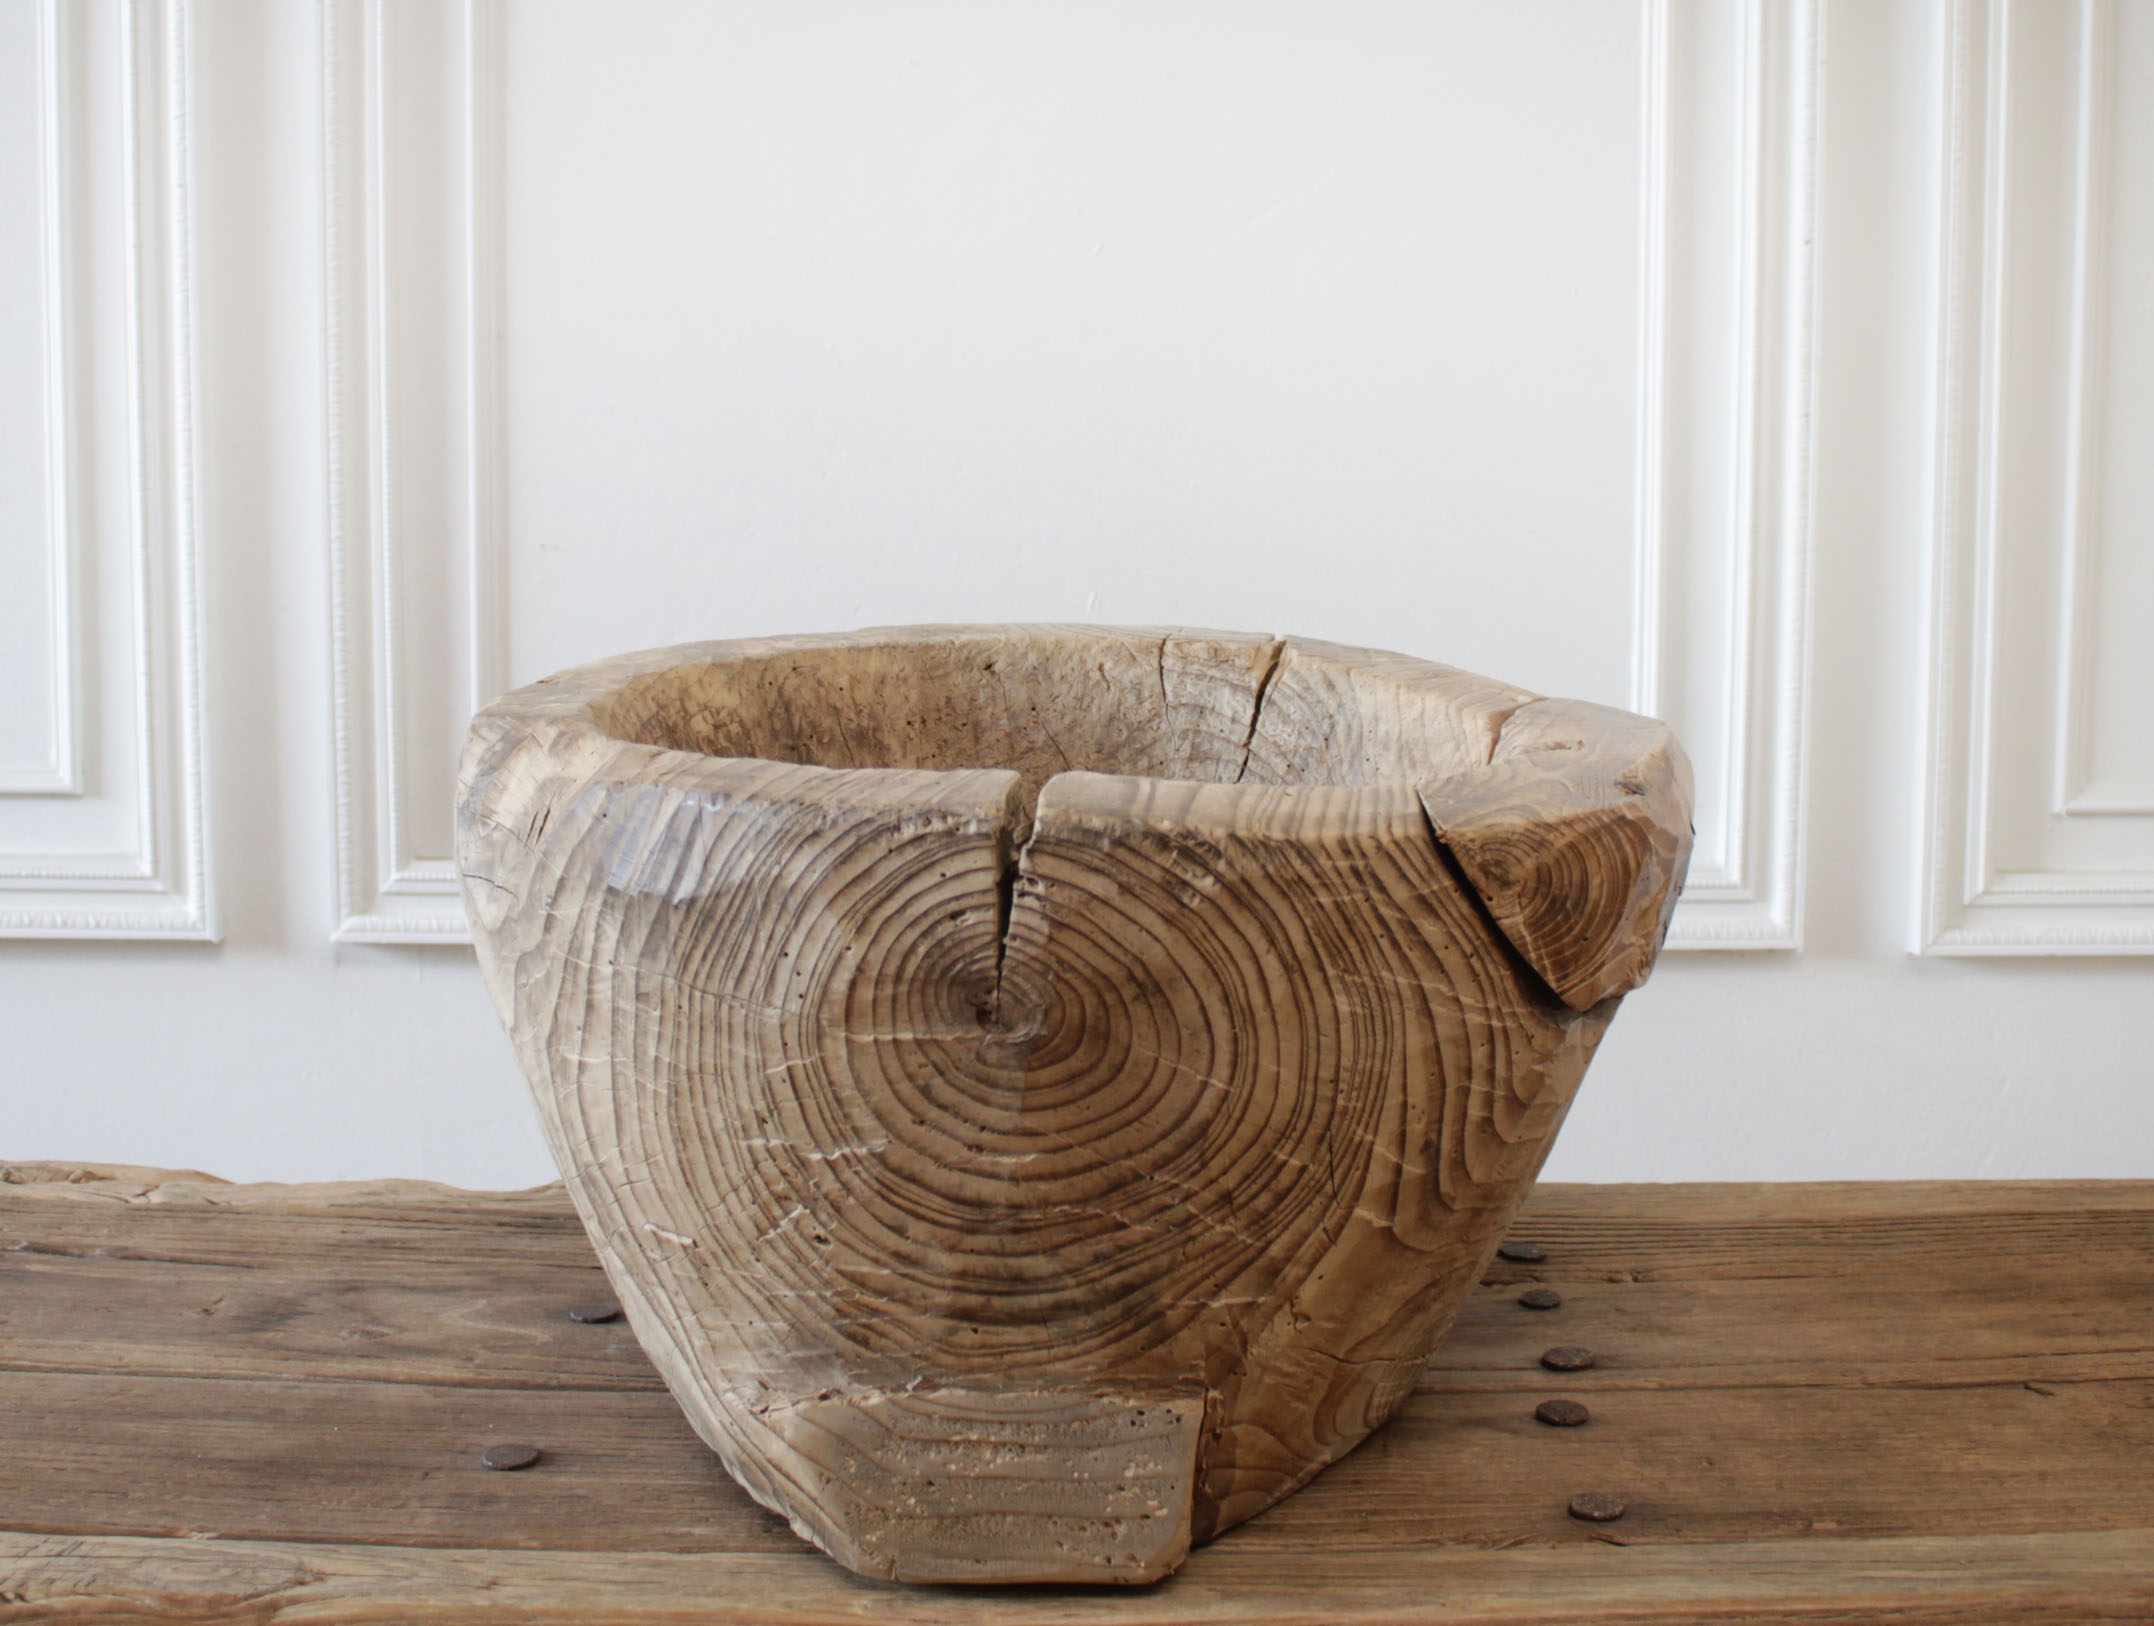 Primitive Rustic Style Tree Trunk Wood Bowl